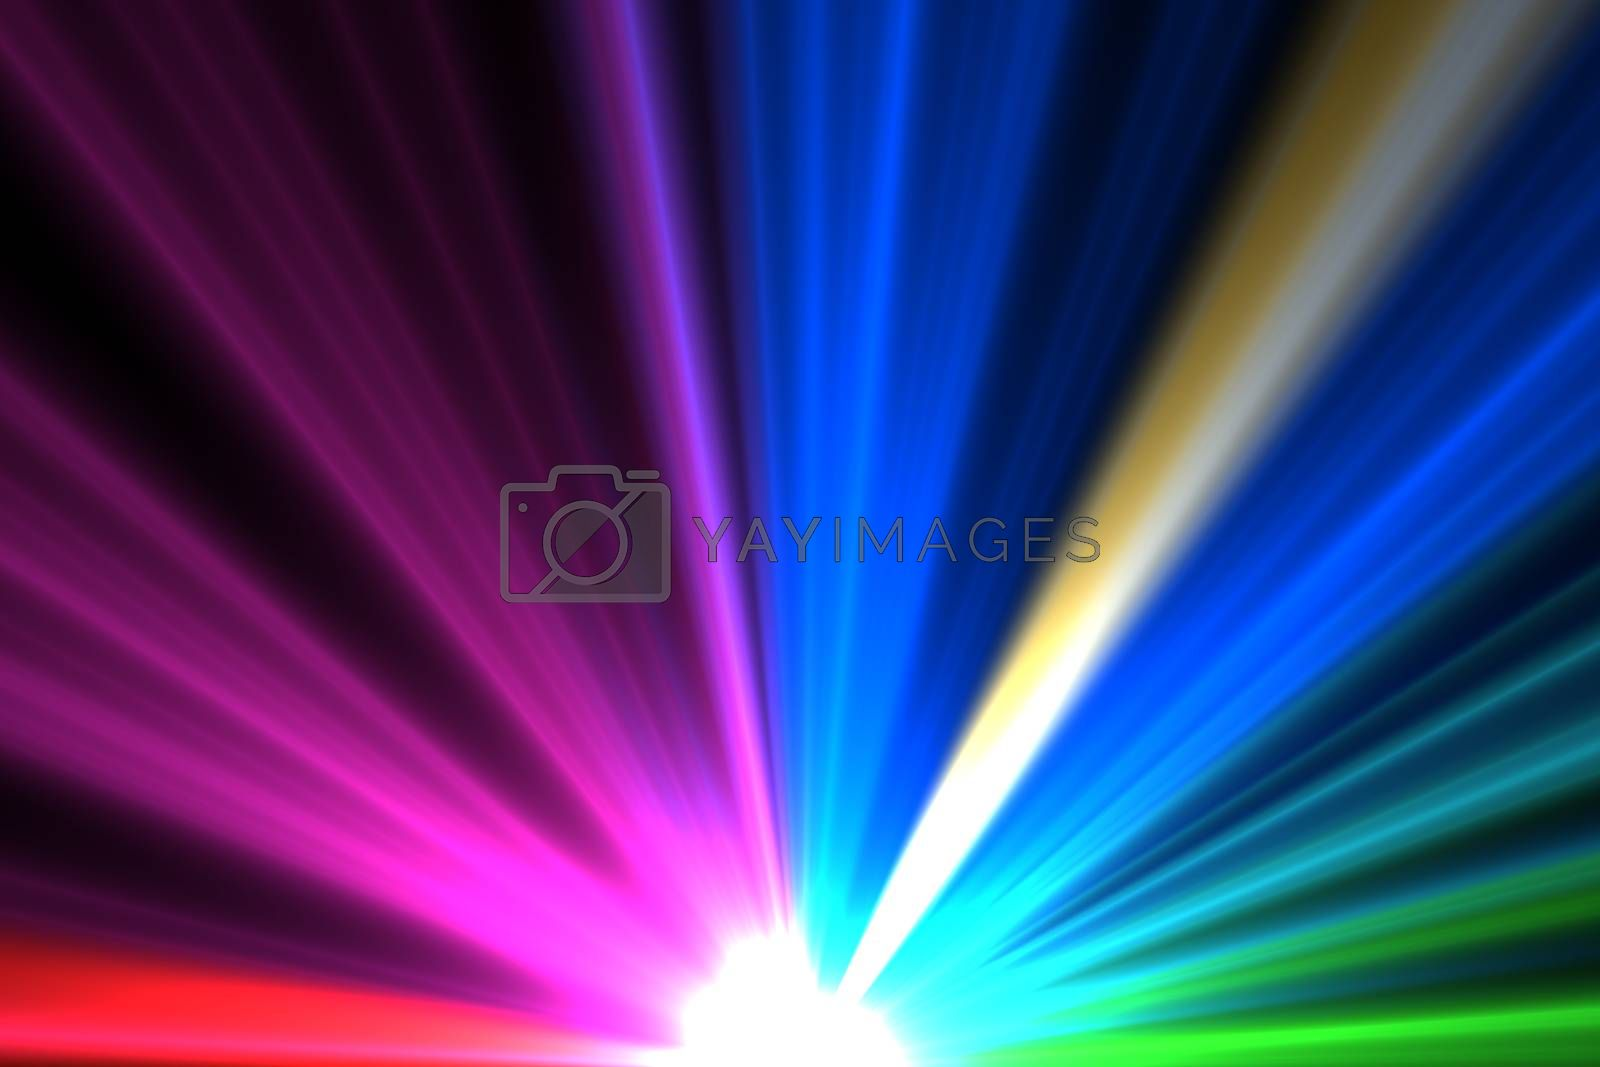 Royalty free image of Bright colourful laser beams shining by Wavebreakmedia